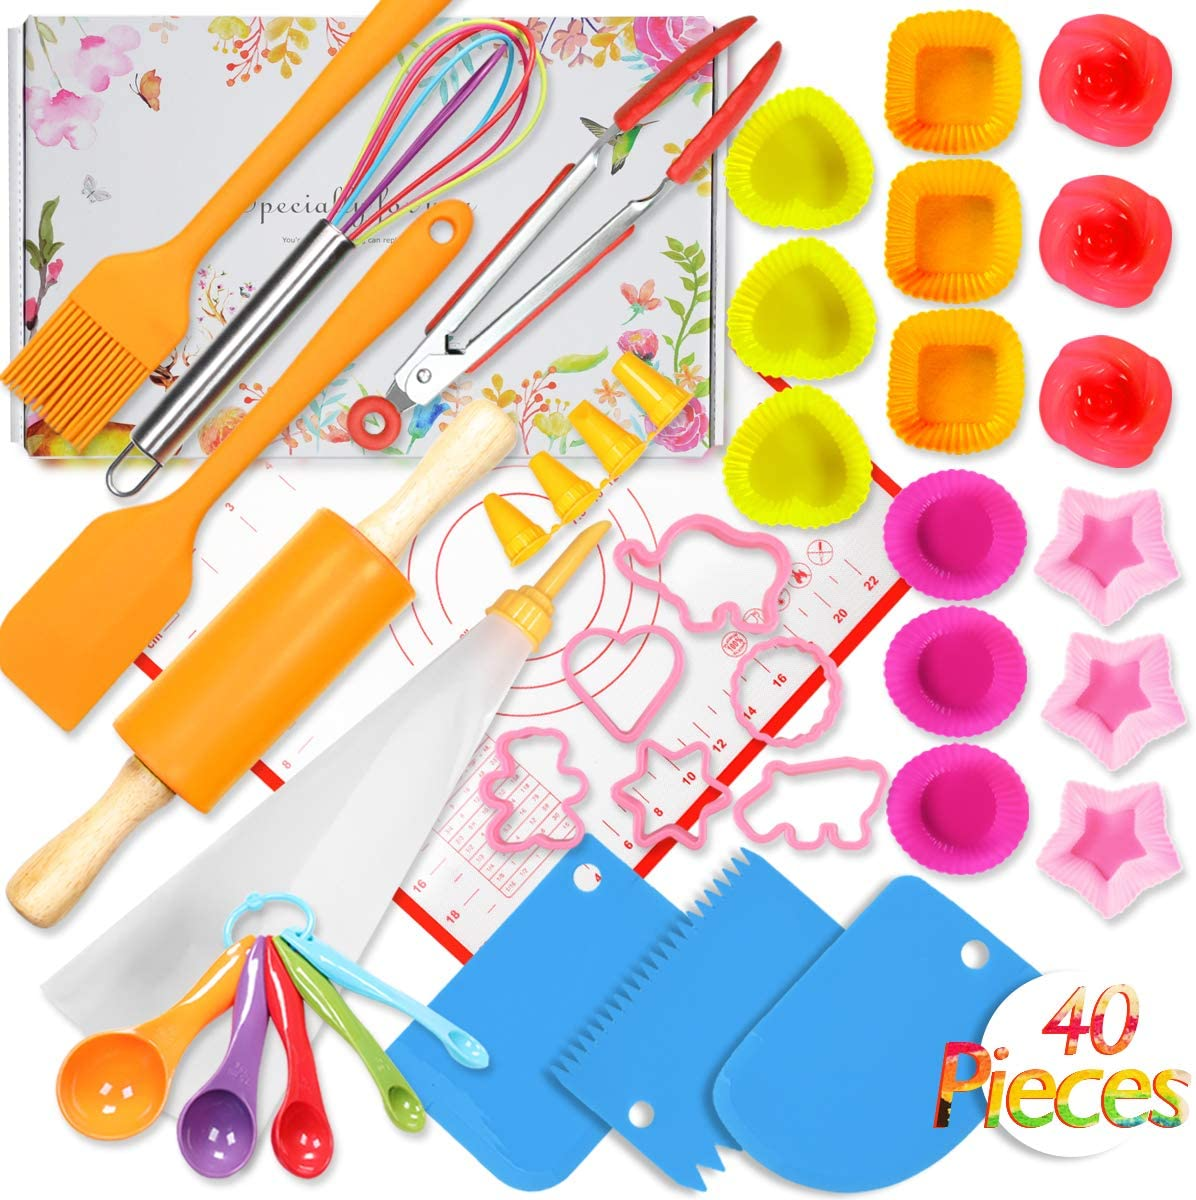 Shacoryze Kids Cooking and Baking Set 40 Pcs with Gift Box, Real Kitchen Utensils Kit for Toddlers Teens, Gift for Girls&Boys, Nonstick Rolling Pin Silicone Pastry Mat Cupcake Molds